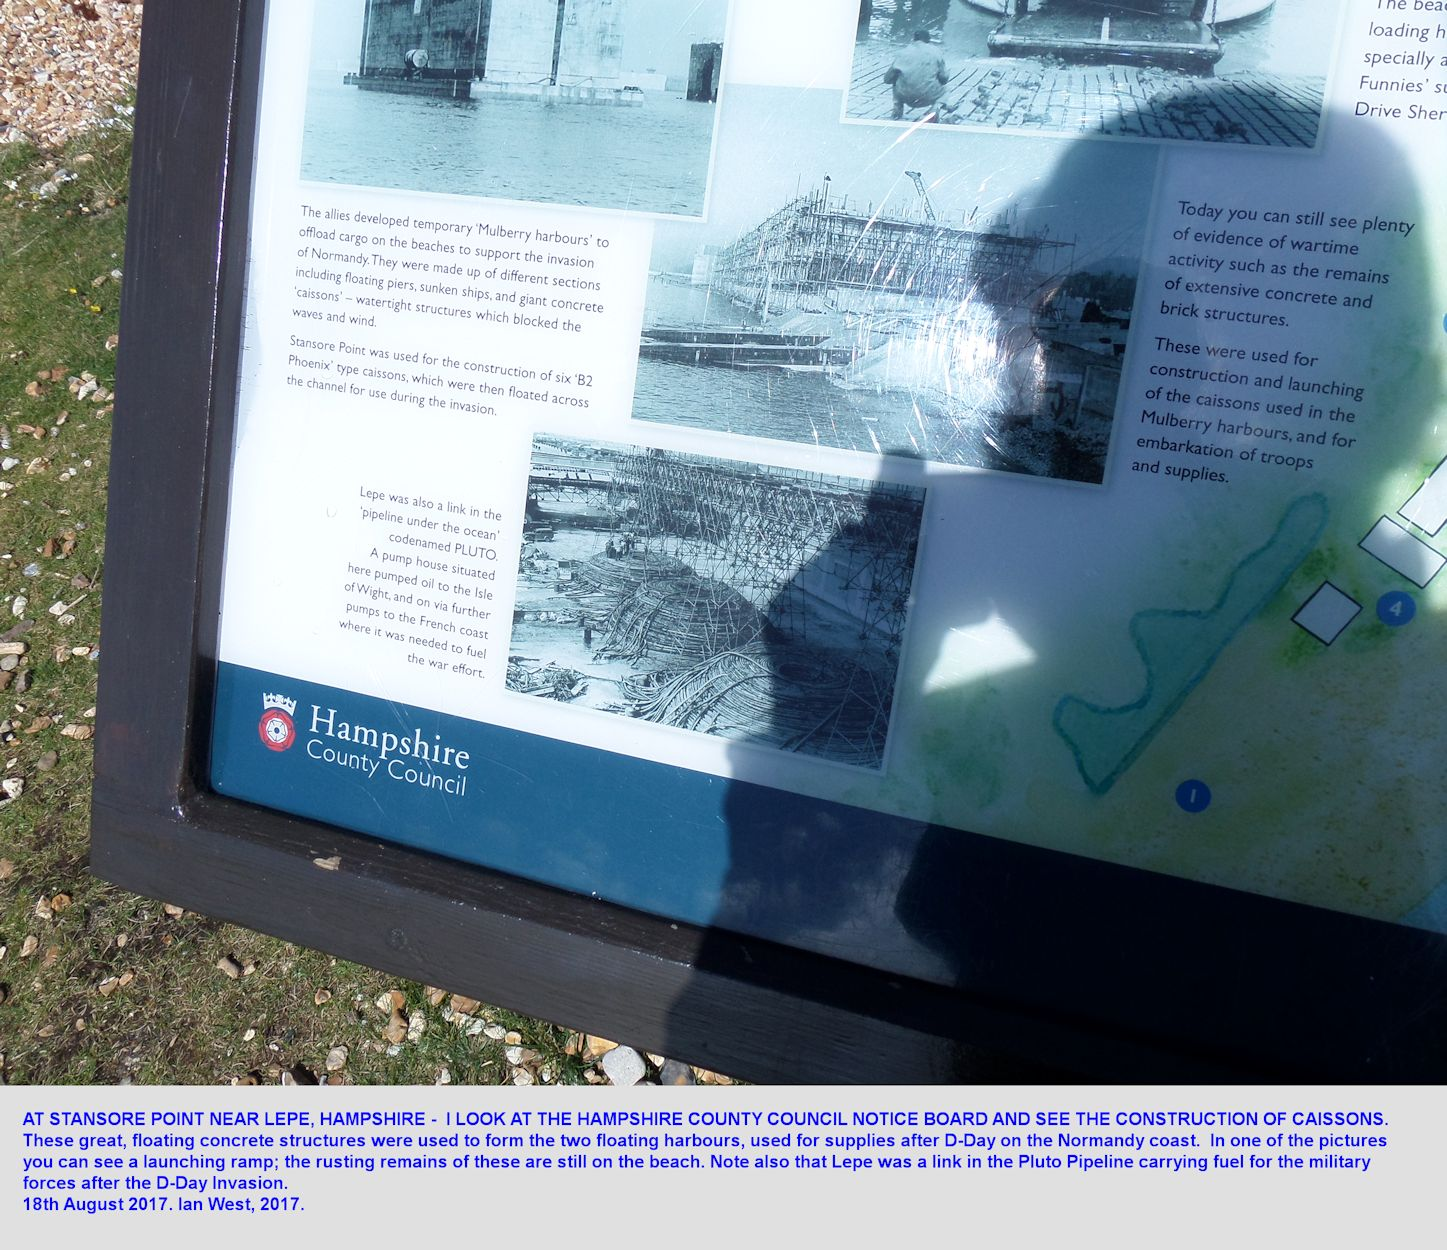 A Council Notice Board at Stansore Point, east of Lepe Beach, Hampshire, that provides information on the construction of concrete Caissons, here on this beach, and also information on the invasion fuel pipeline